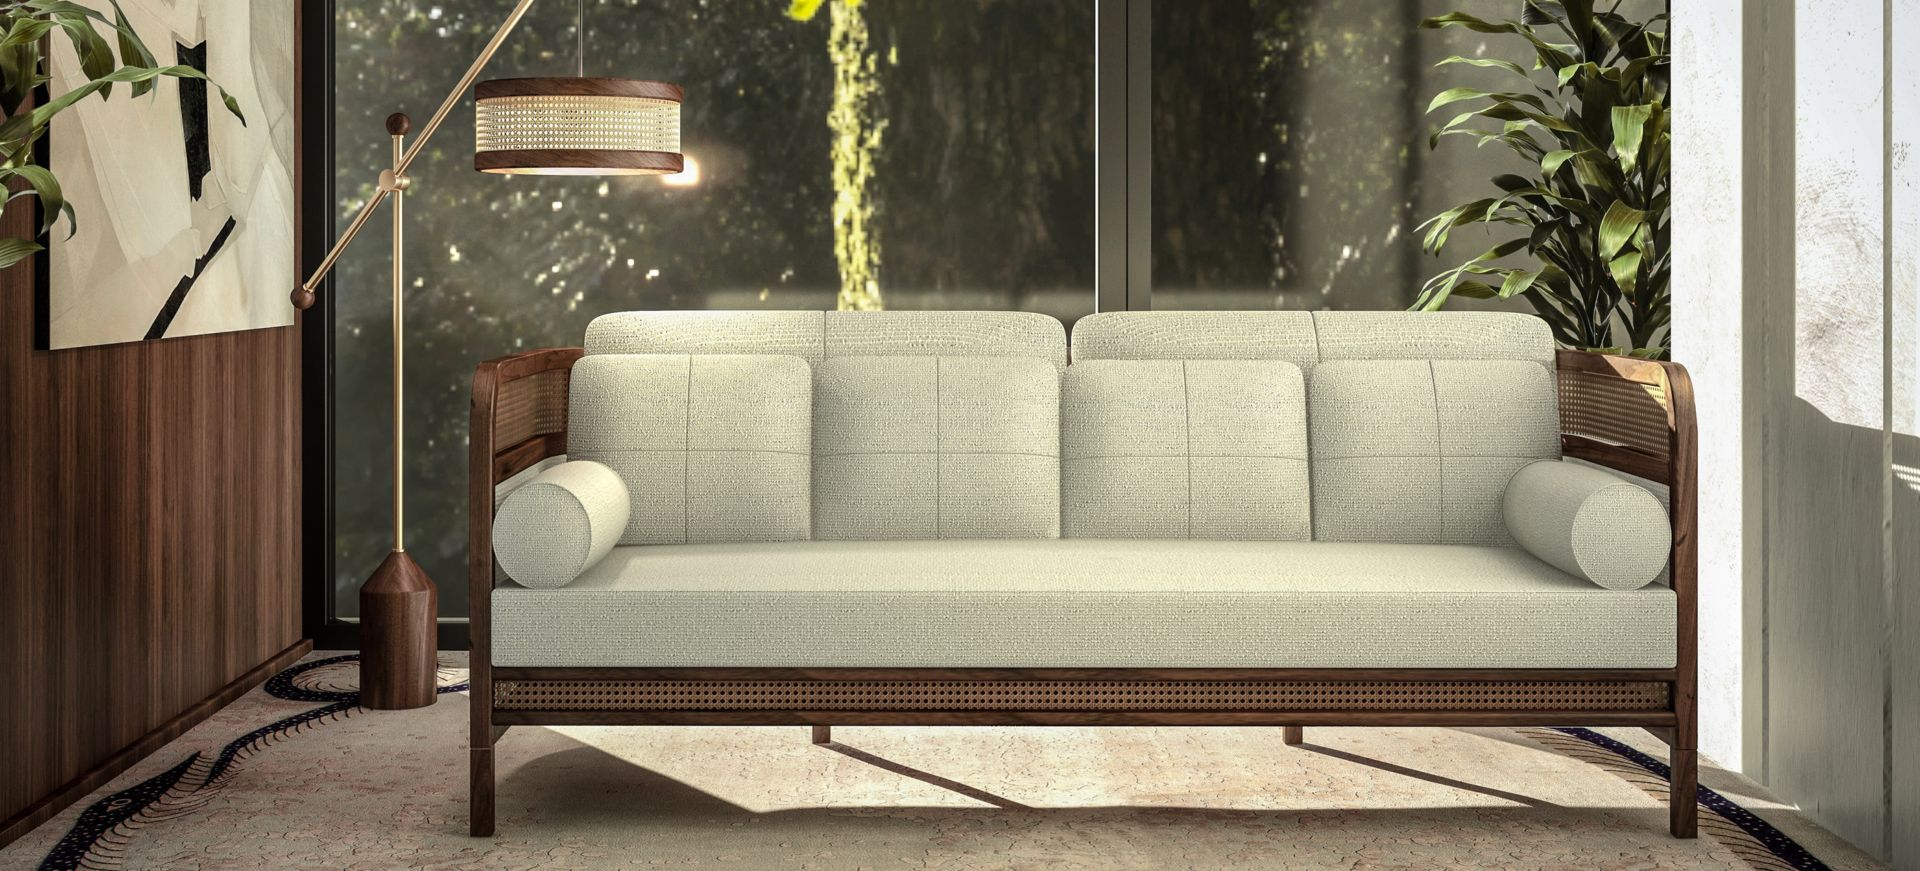 Crockford Sofa with Hamilton Floor Lamp and Whittle Suspension Lamp